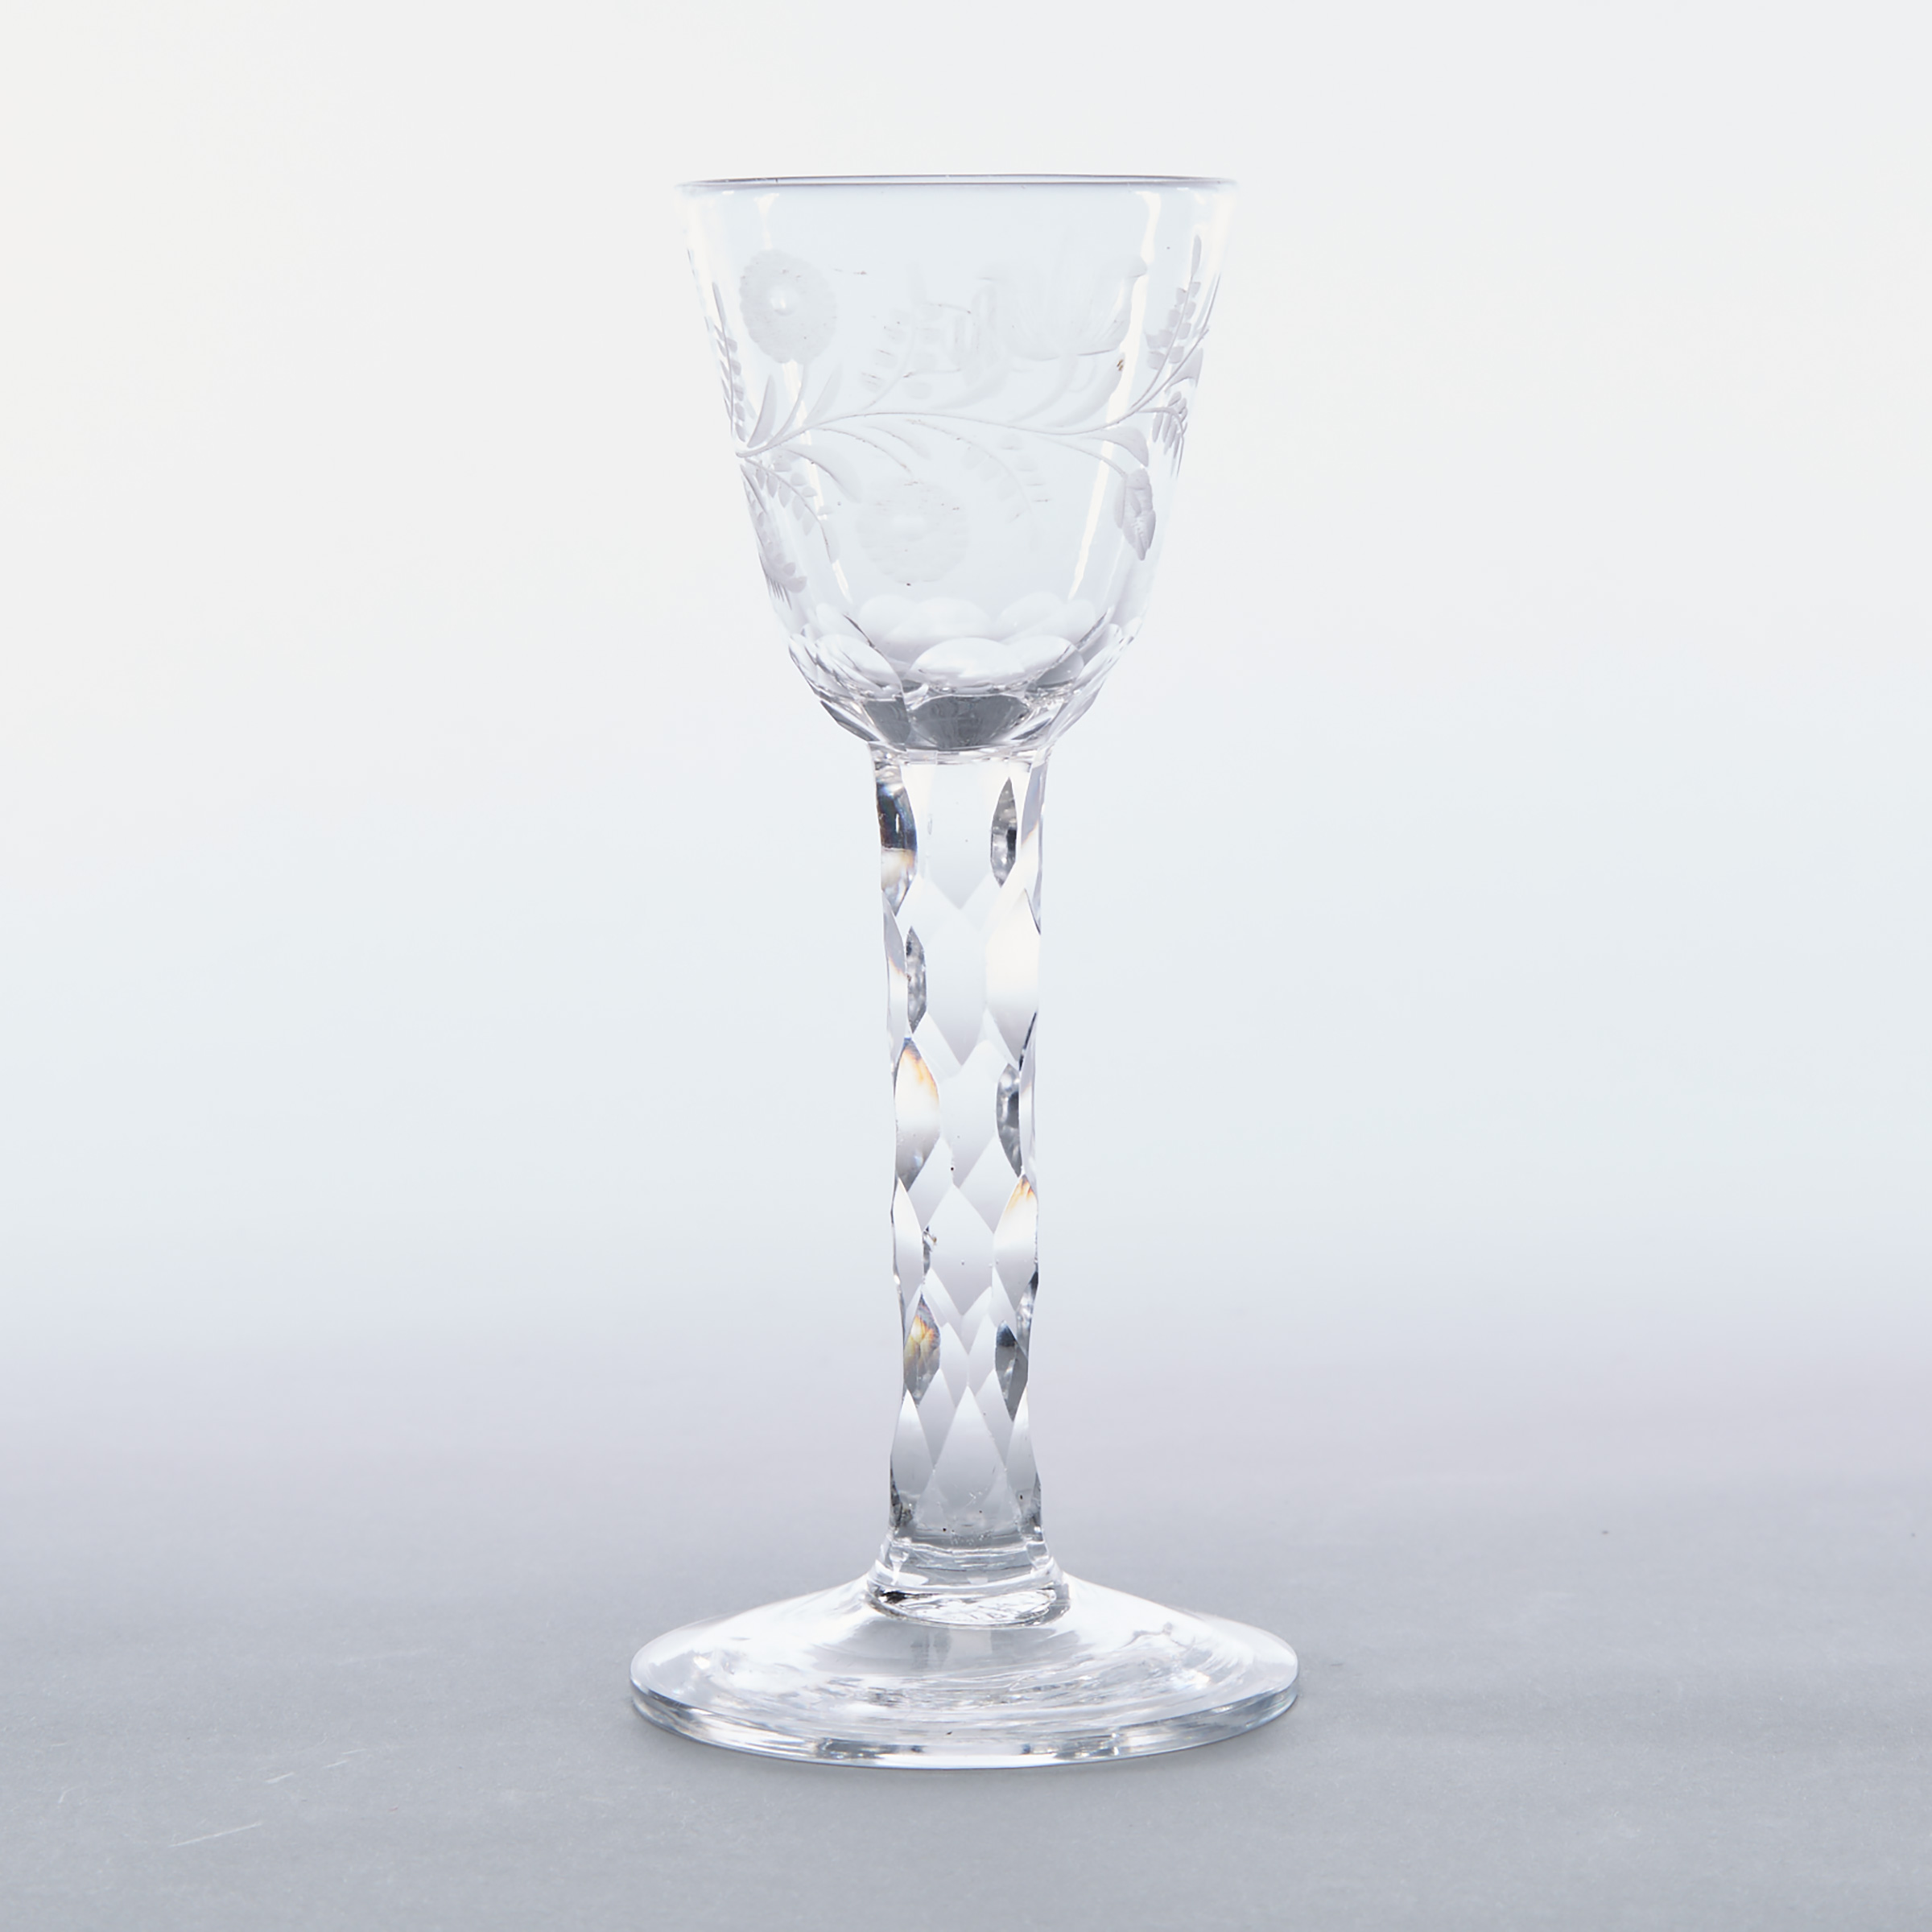 English Engraved Faceted Stemmed Wine Glass, c.1765-80